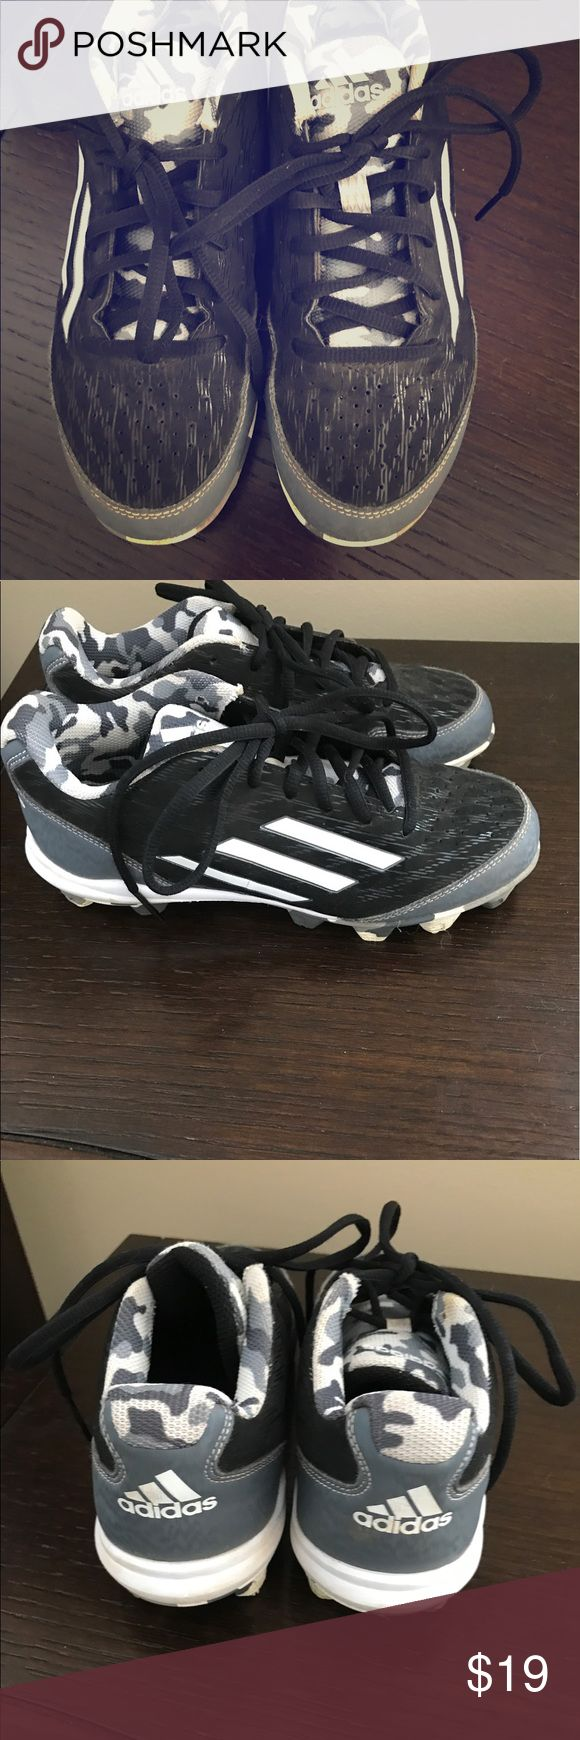 Boys Football Cleats Male youth Football Cleats by Adidas in great condition. Purchased from Dick's sporting goods last fall. adidas Shoes